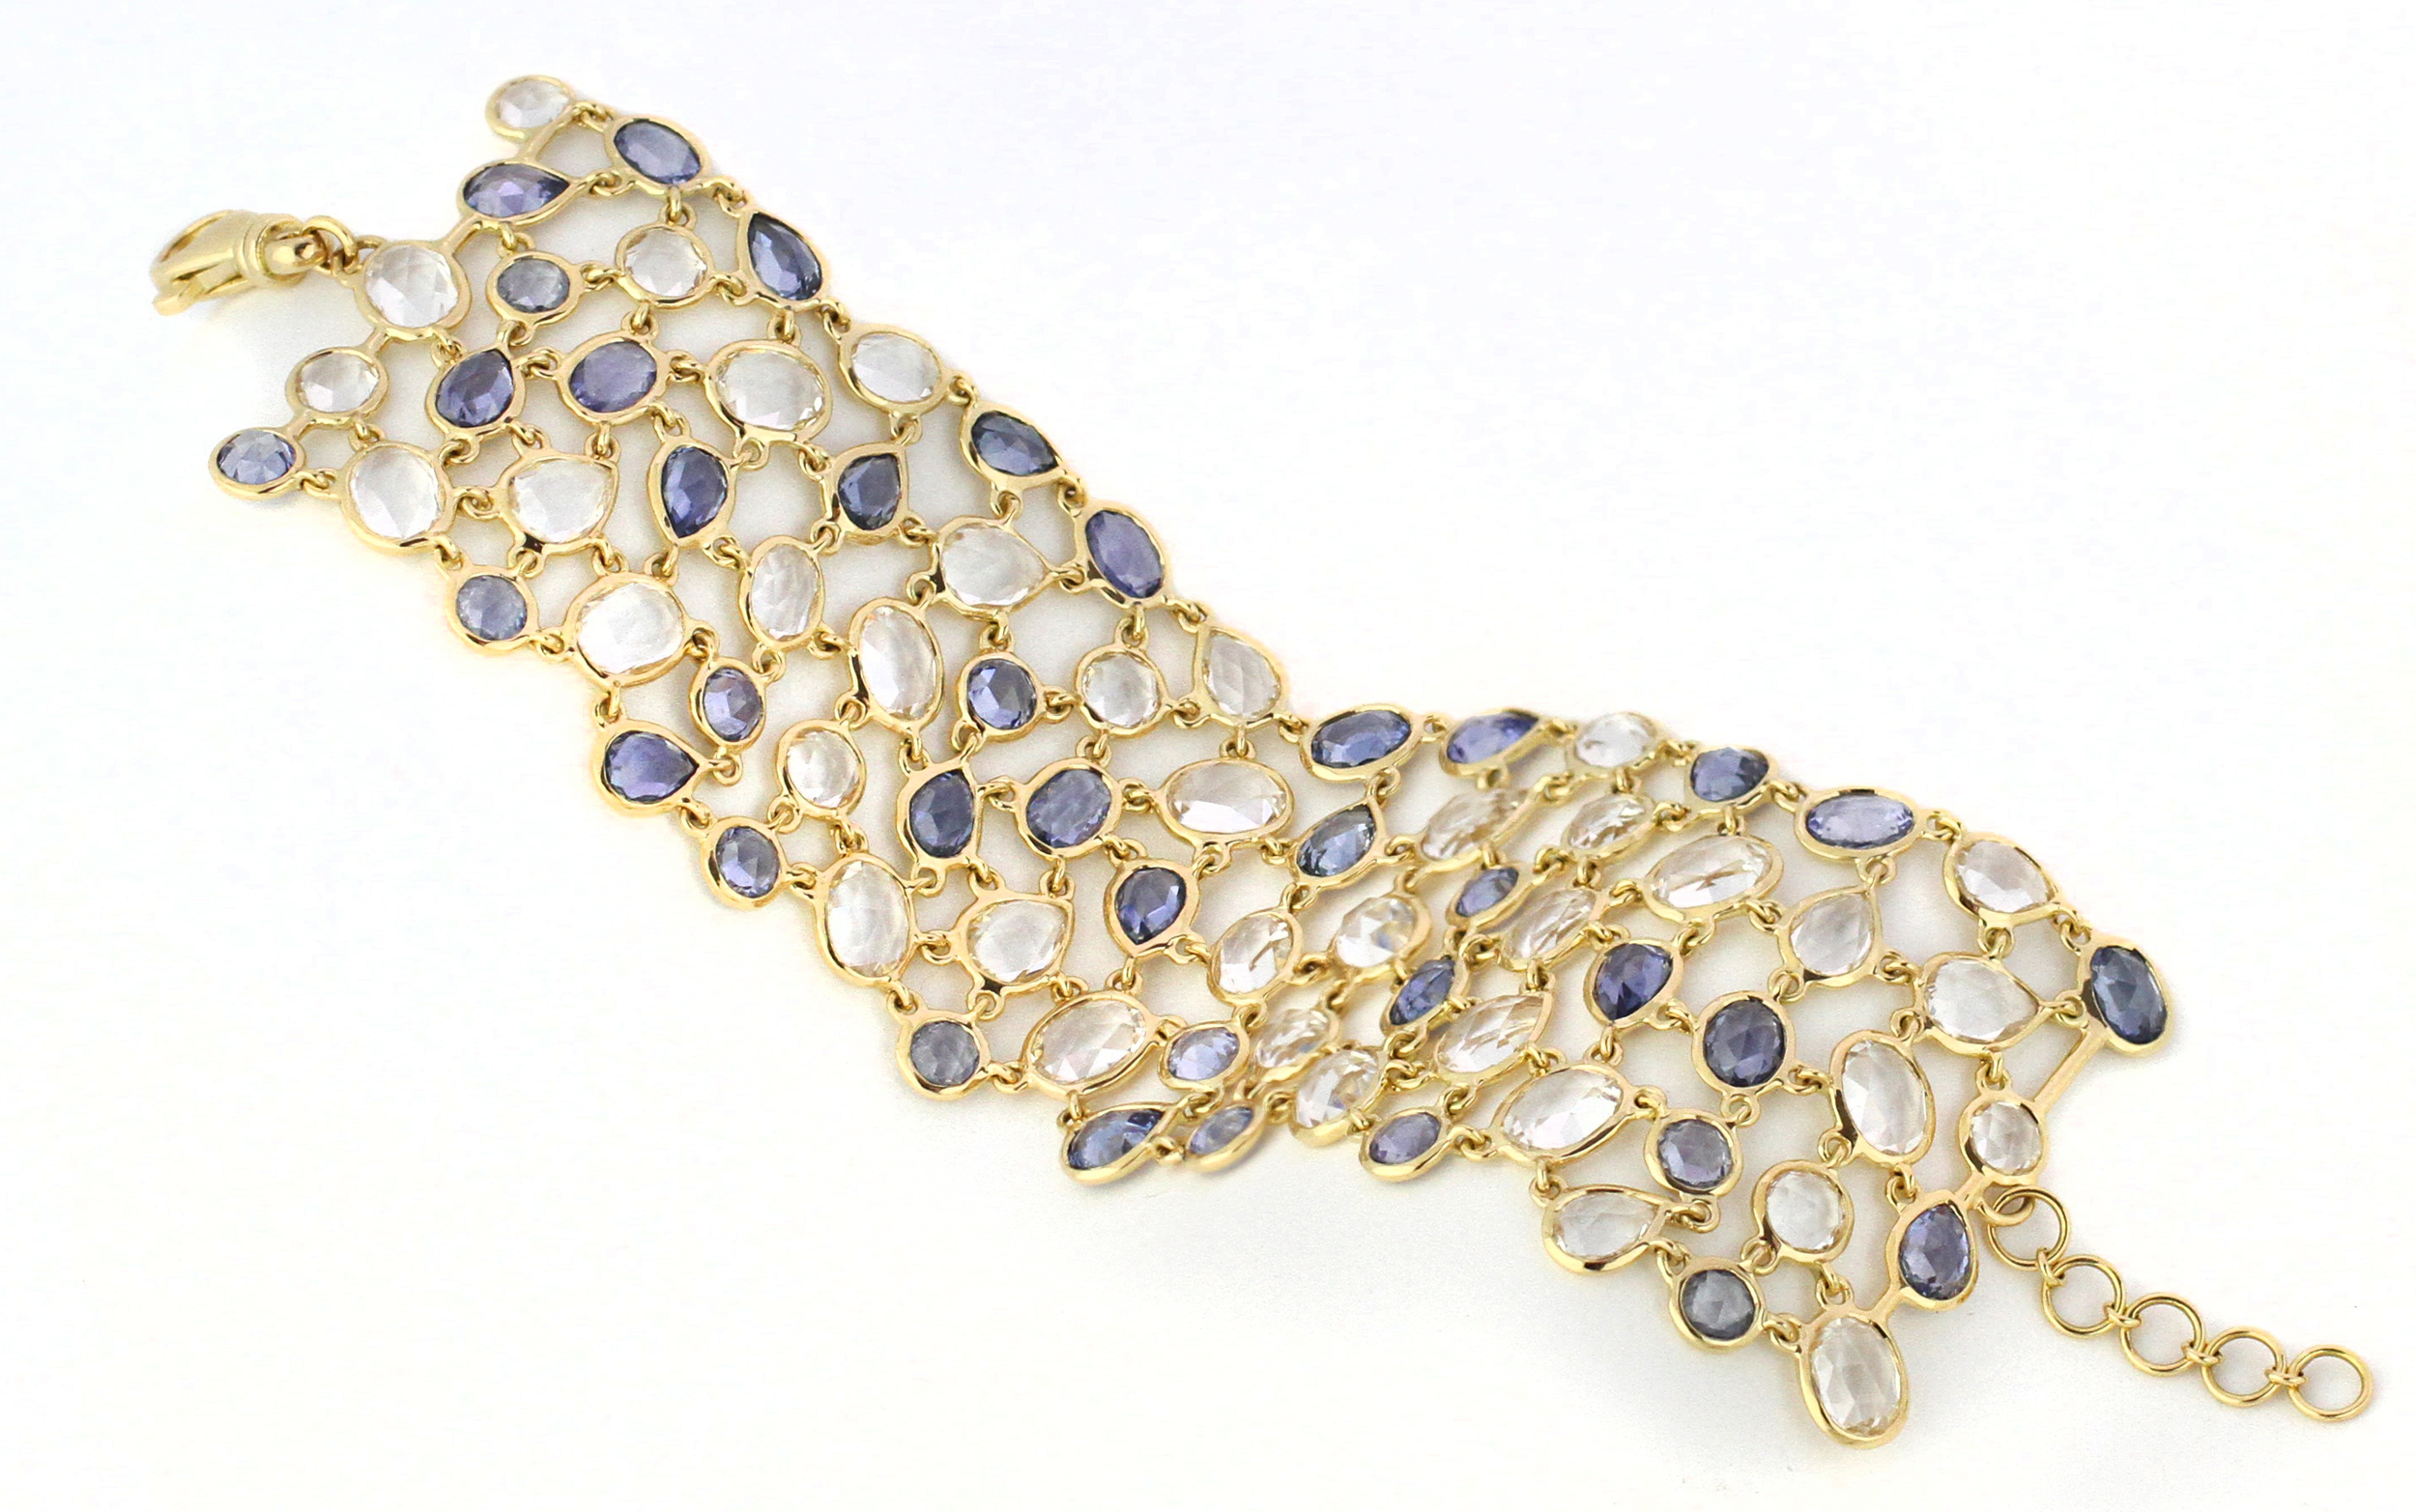 45050-blue _Rose-Cut Blue Sapphire and Rock Cyrstal Bracelet.jpg